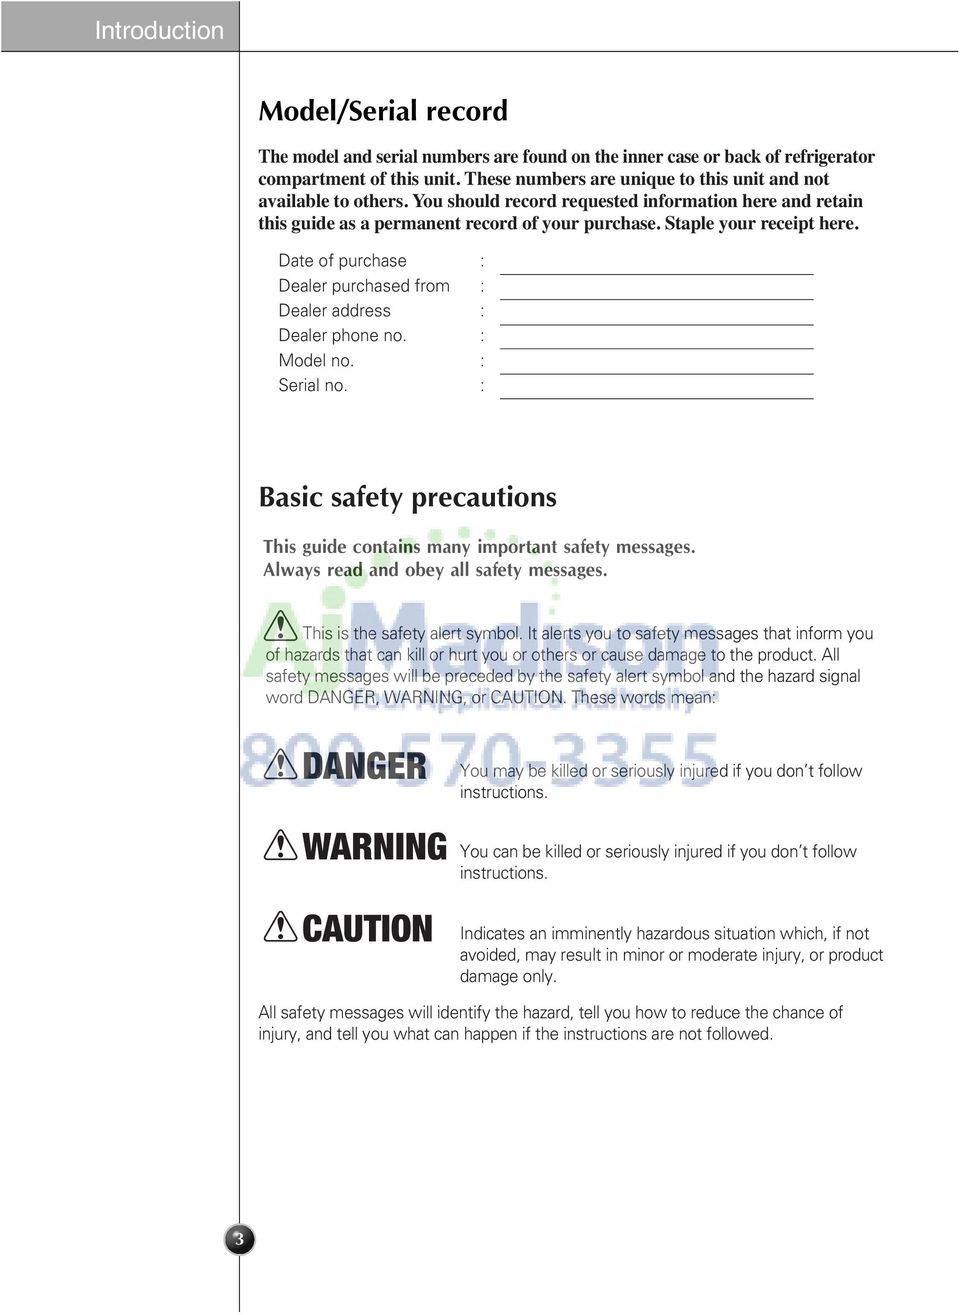 Date of purchase : Dealer purchased from : Dealer address : Dealer phone no. : Model no. : Serial no. : Basic safety precautions This guide contains many important safety messages.